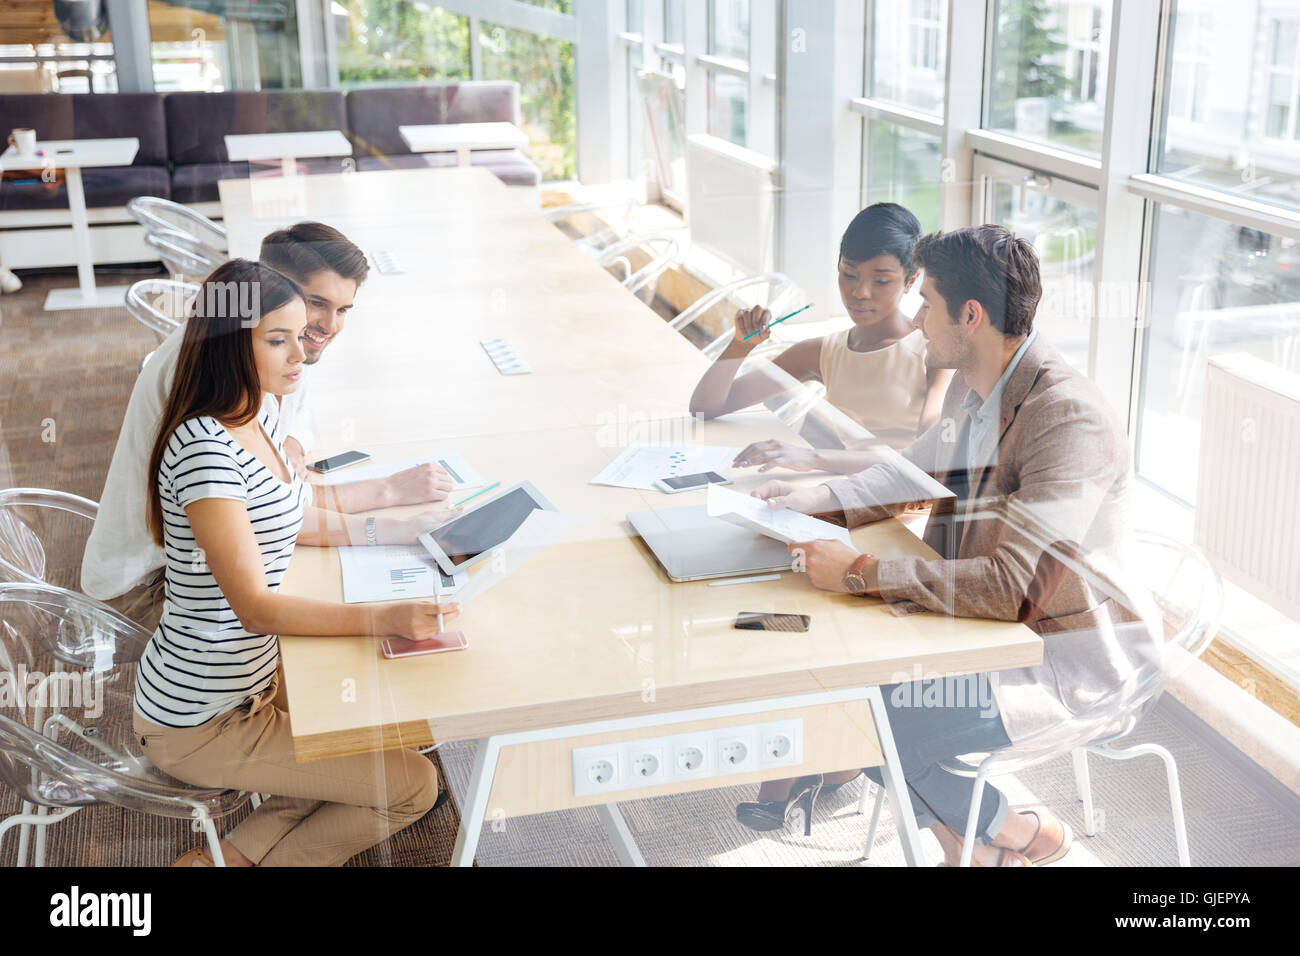 Multiethnic group of young business people on the meeting in conference room - Stock Image